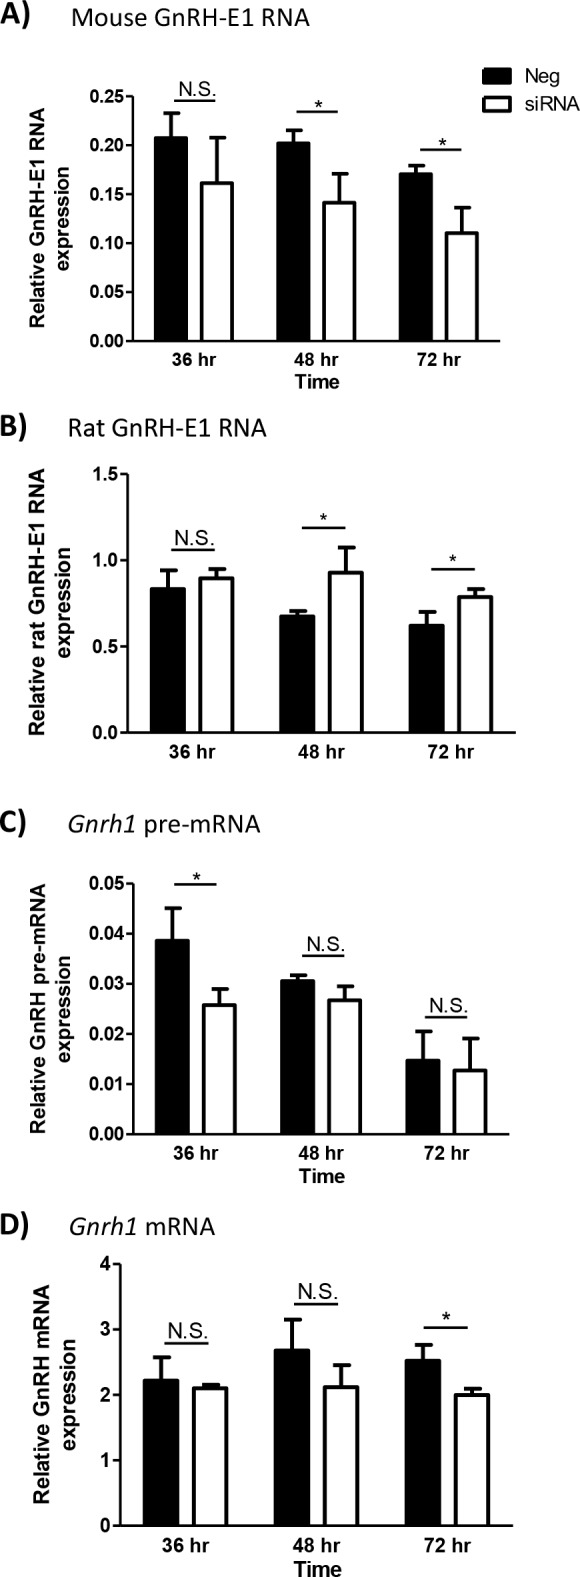 The effect of <t>GnRH-E1</t> RNA knockdown on Gnrh1 gene expression. (A-D) GT1-7 neurons were transfected with either negative <t>siRNA</t> control (Neg; black bars) or siRNA targeting both strands of the mouse GnRH-E1 RNA (siRNA; white bars). Total RNA was harvested at 36 hours, 48 hours, and 72 hours after siRNA transfection. RT-qPCR analysis was performed to quantify endogenous mouse GnRH-E1 RNA (A), transgene-derived rat (rTg) GnRH-E1 RNA (B), Gnrh1 pre-mRNA (C), and Gnrh1 mRNA (D) expression. Relative RNA expression is normalized to control histone 2A.Z ( H2afz ) mRNA expression at each time point. Data are displayed as the mean ± SD, where statistical significance was determined by Student's t-test compared between negative control and siRNA treatment at each time point. Asterisk indicates statistical significance, where p